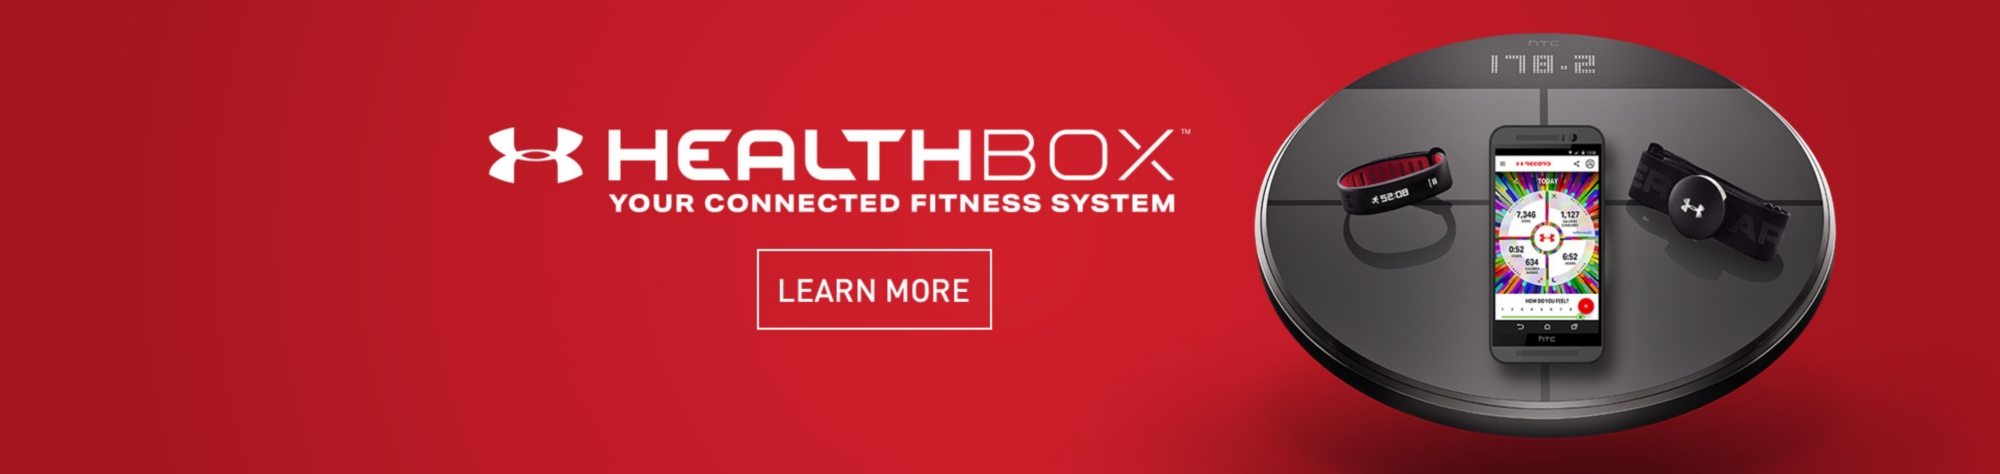 Under Armour Healthbox - Learn More